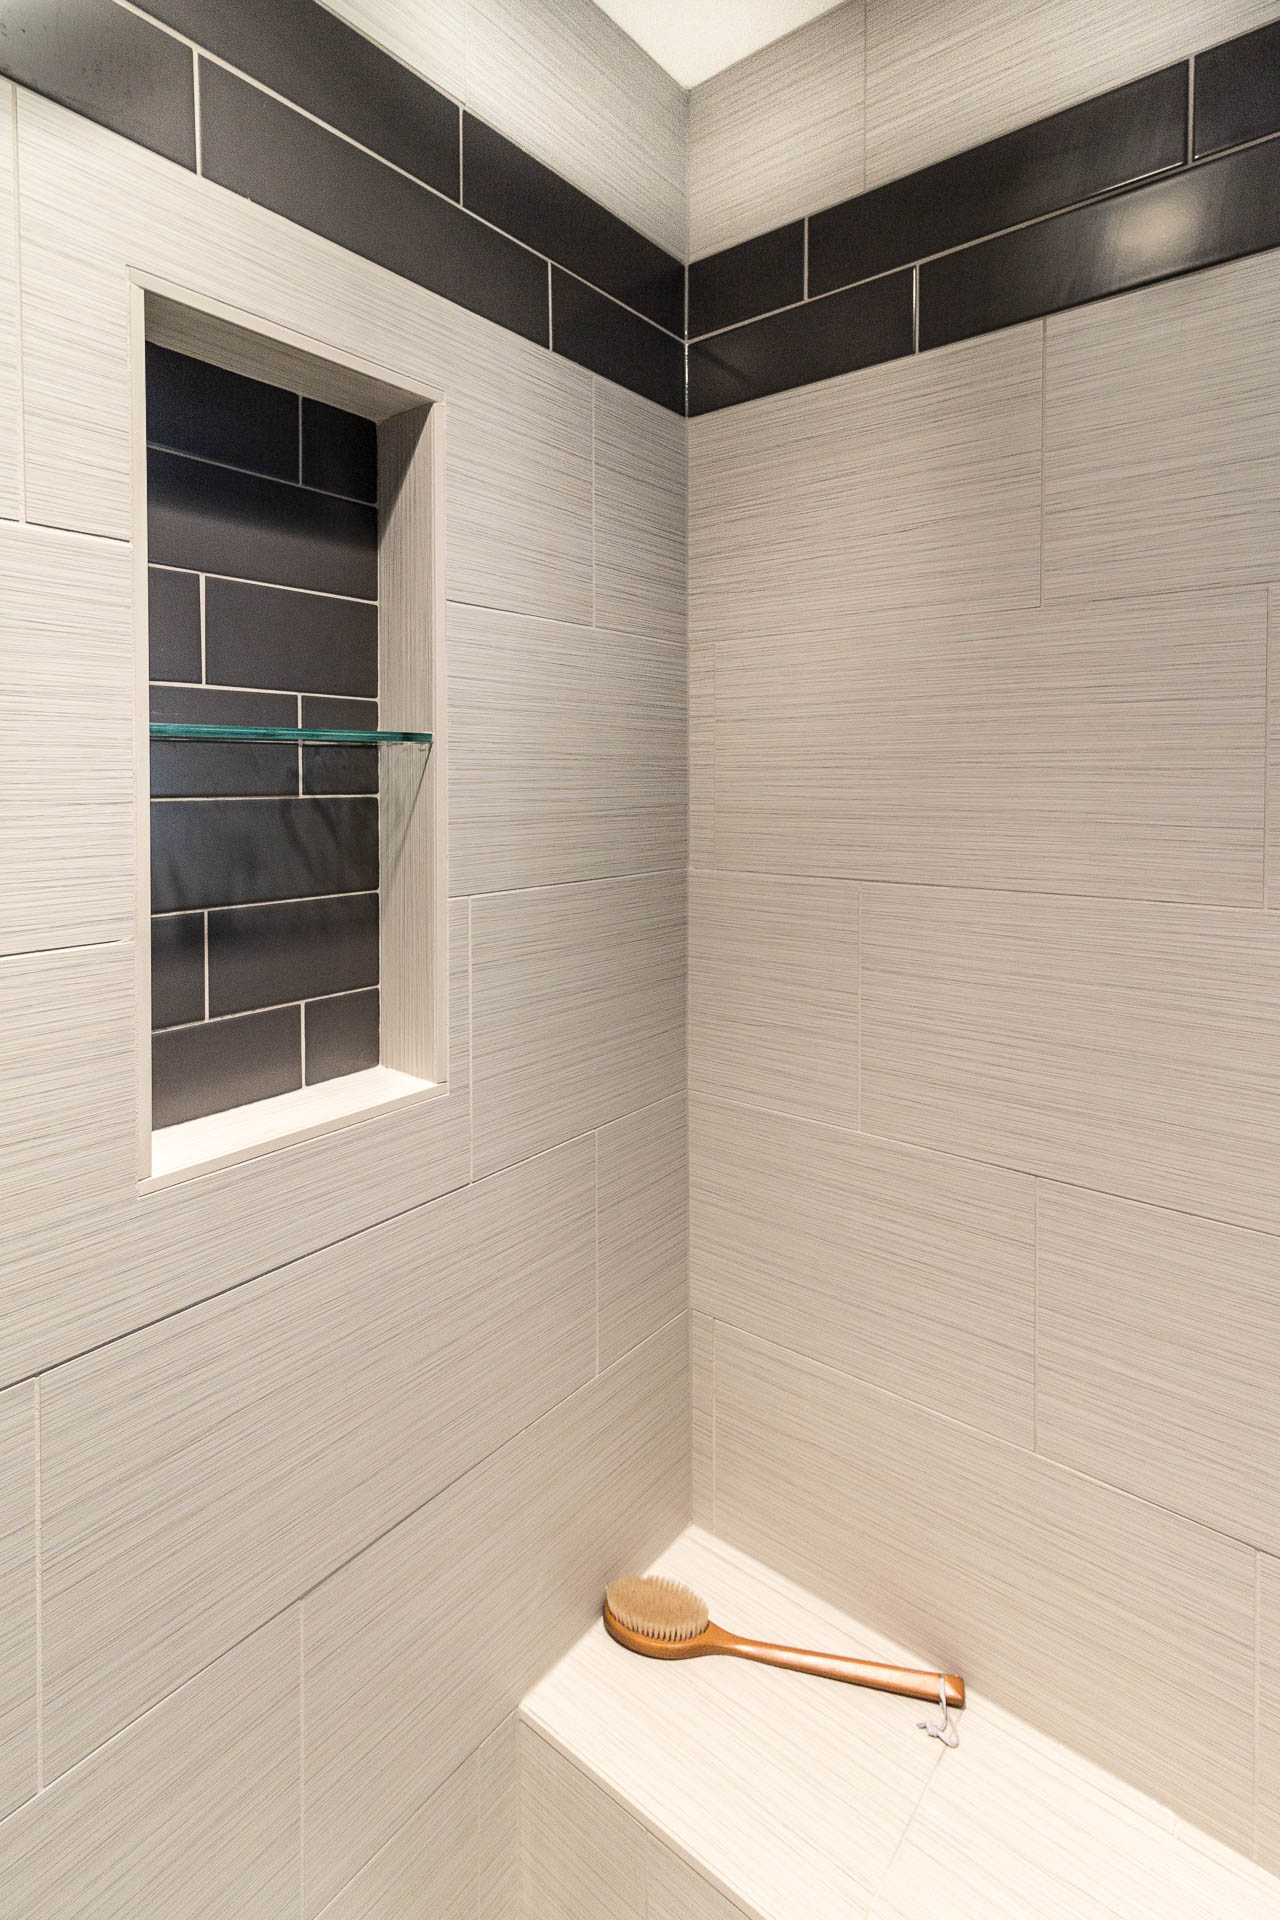 Mster Suite Remodel; Walk In Shower with Seating